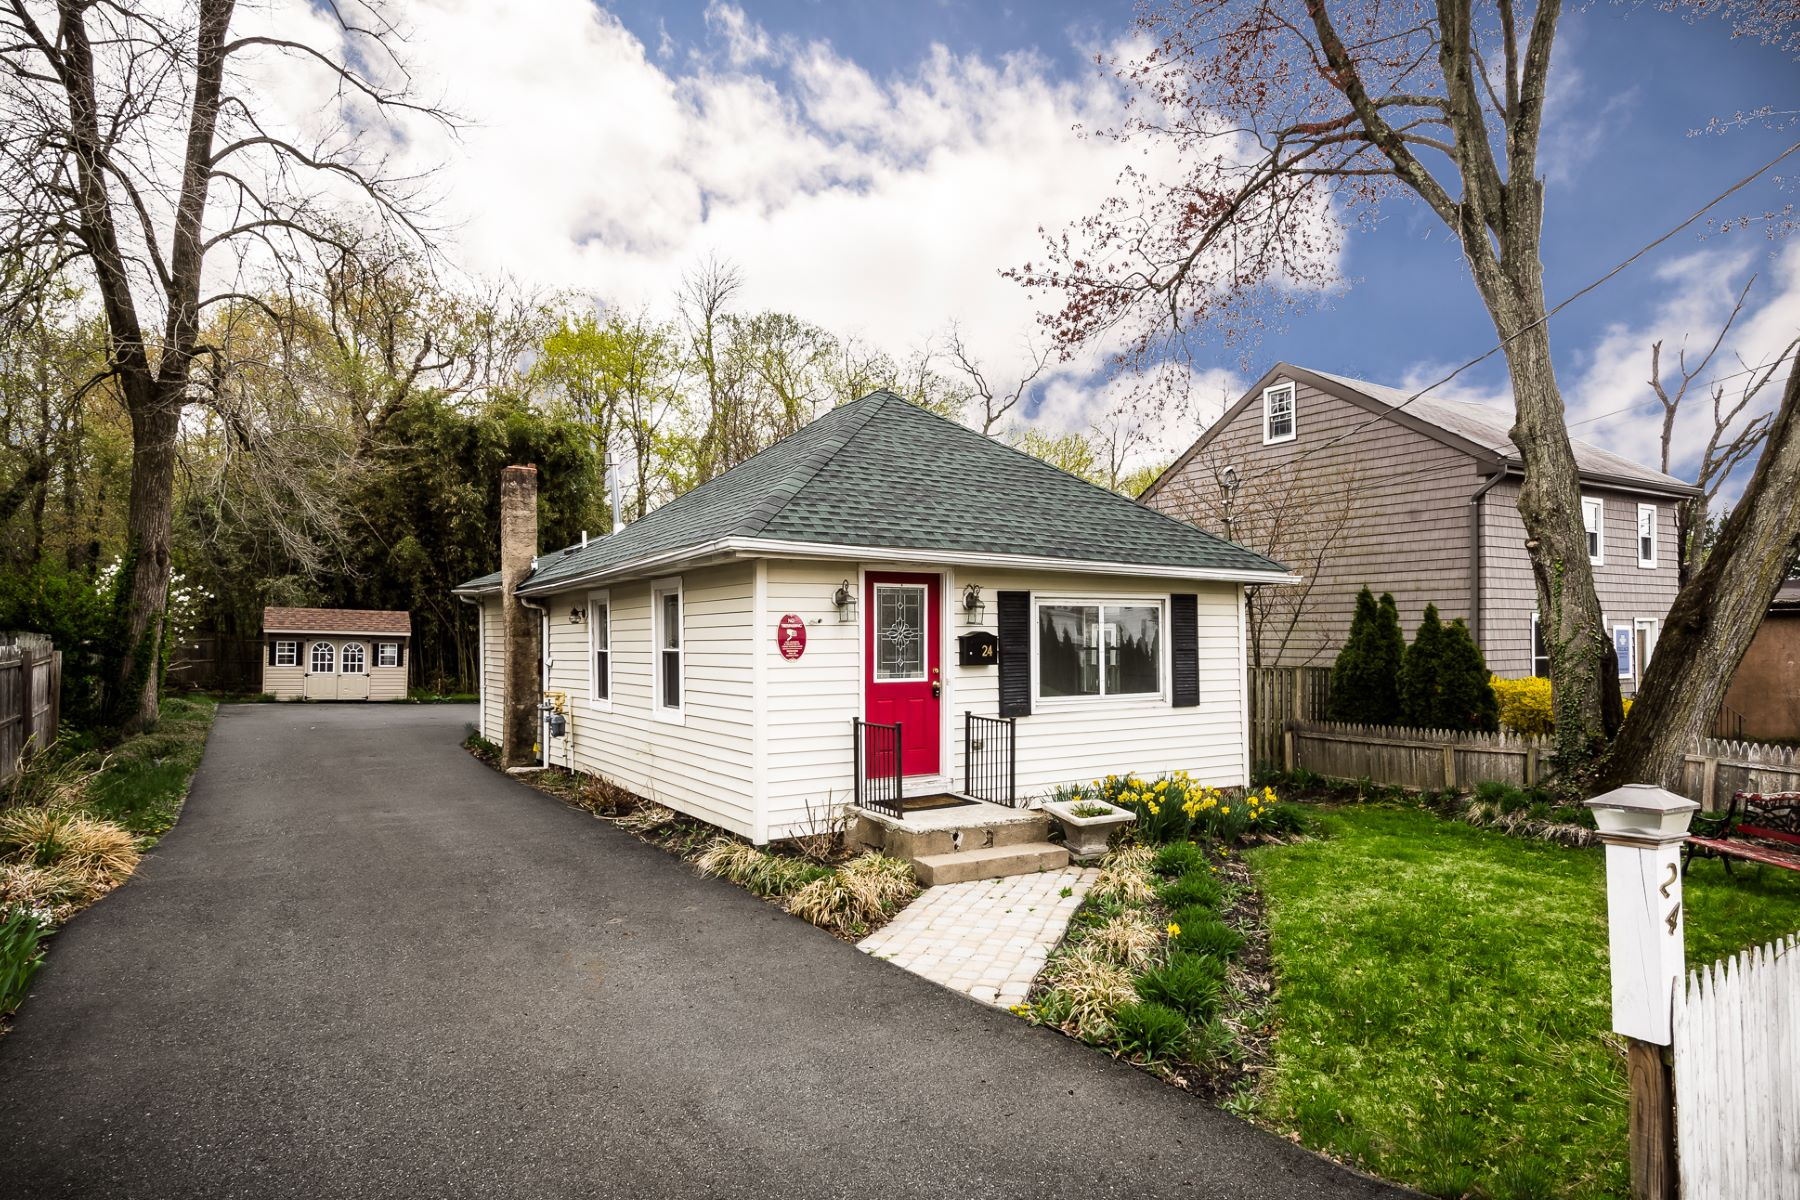 Maison unifamiliale pour l Vente à Doors Away from All that the Hamlet of Lawrenceville Has to Offer 24 Gordon Avenue, Lawrenceville, New Jersey 08648 États-UnisDans/Autour: Lawrence Township